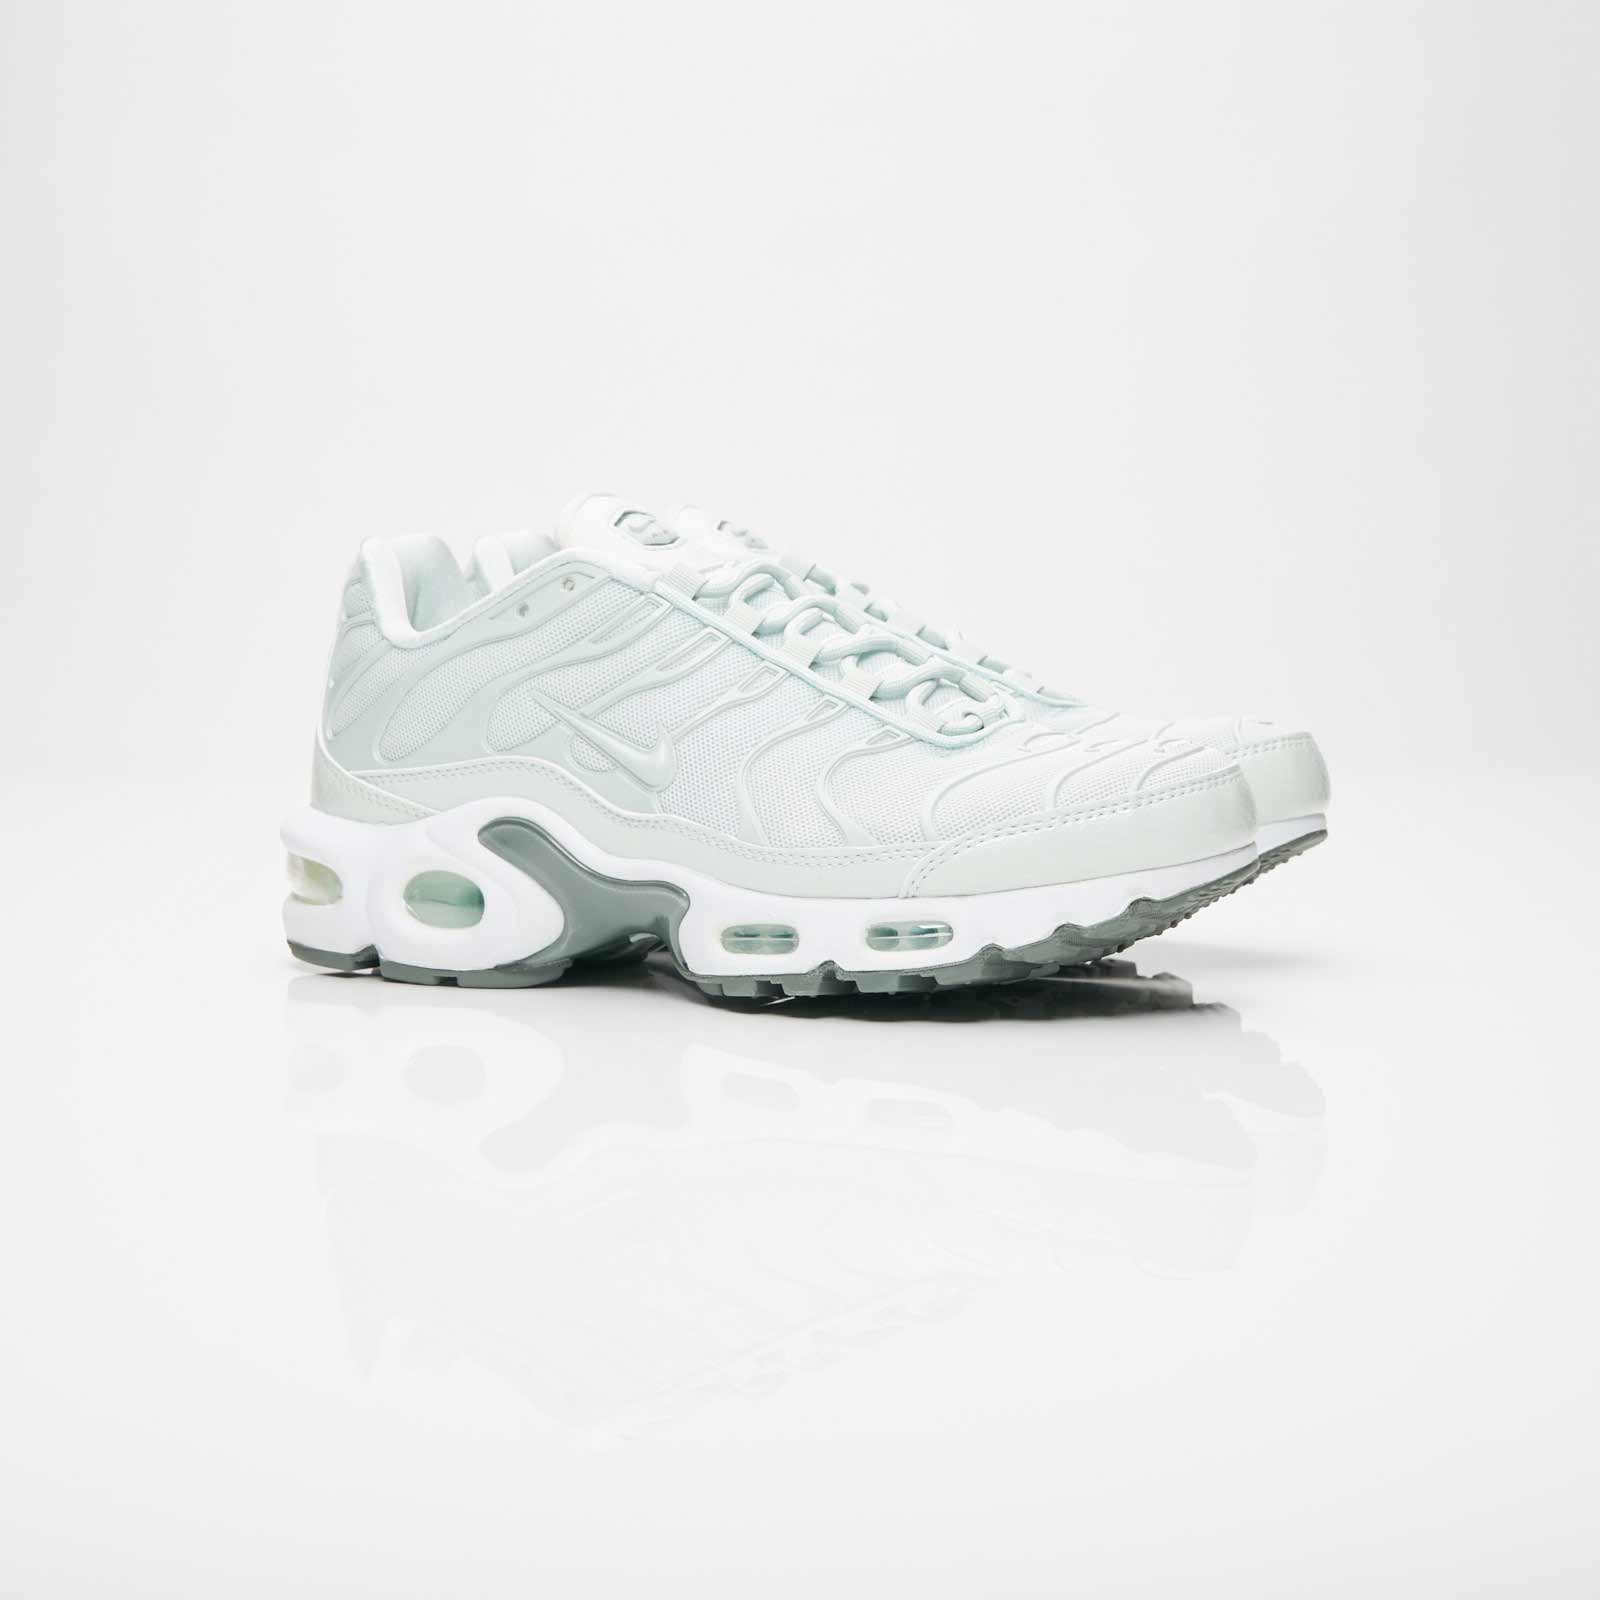 best service 8aae7 533de Nike Wmns Air Max Plus SE - 862201-005 - Sneakersnstuff ...